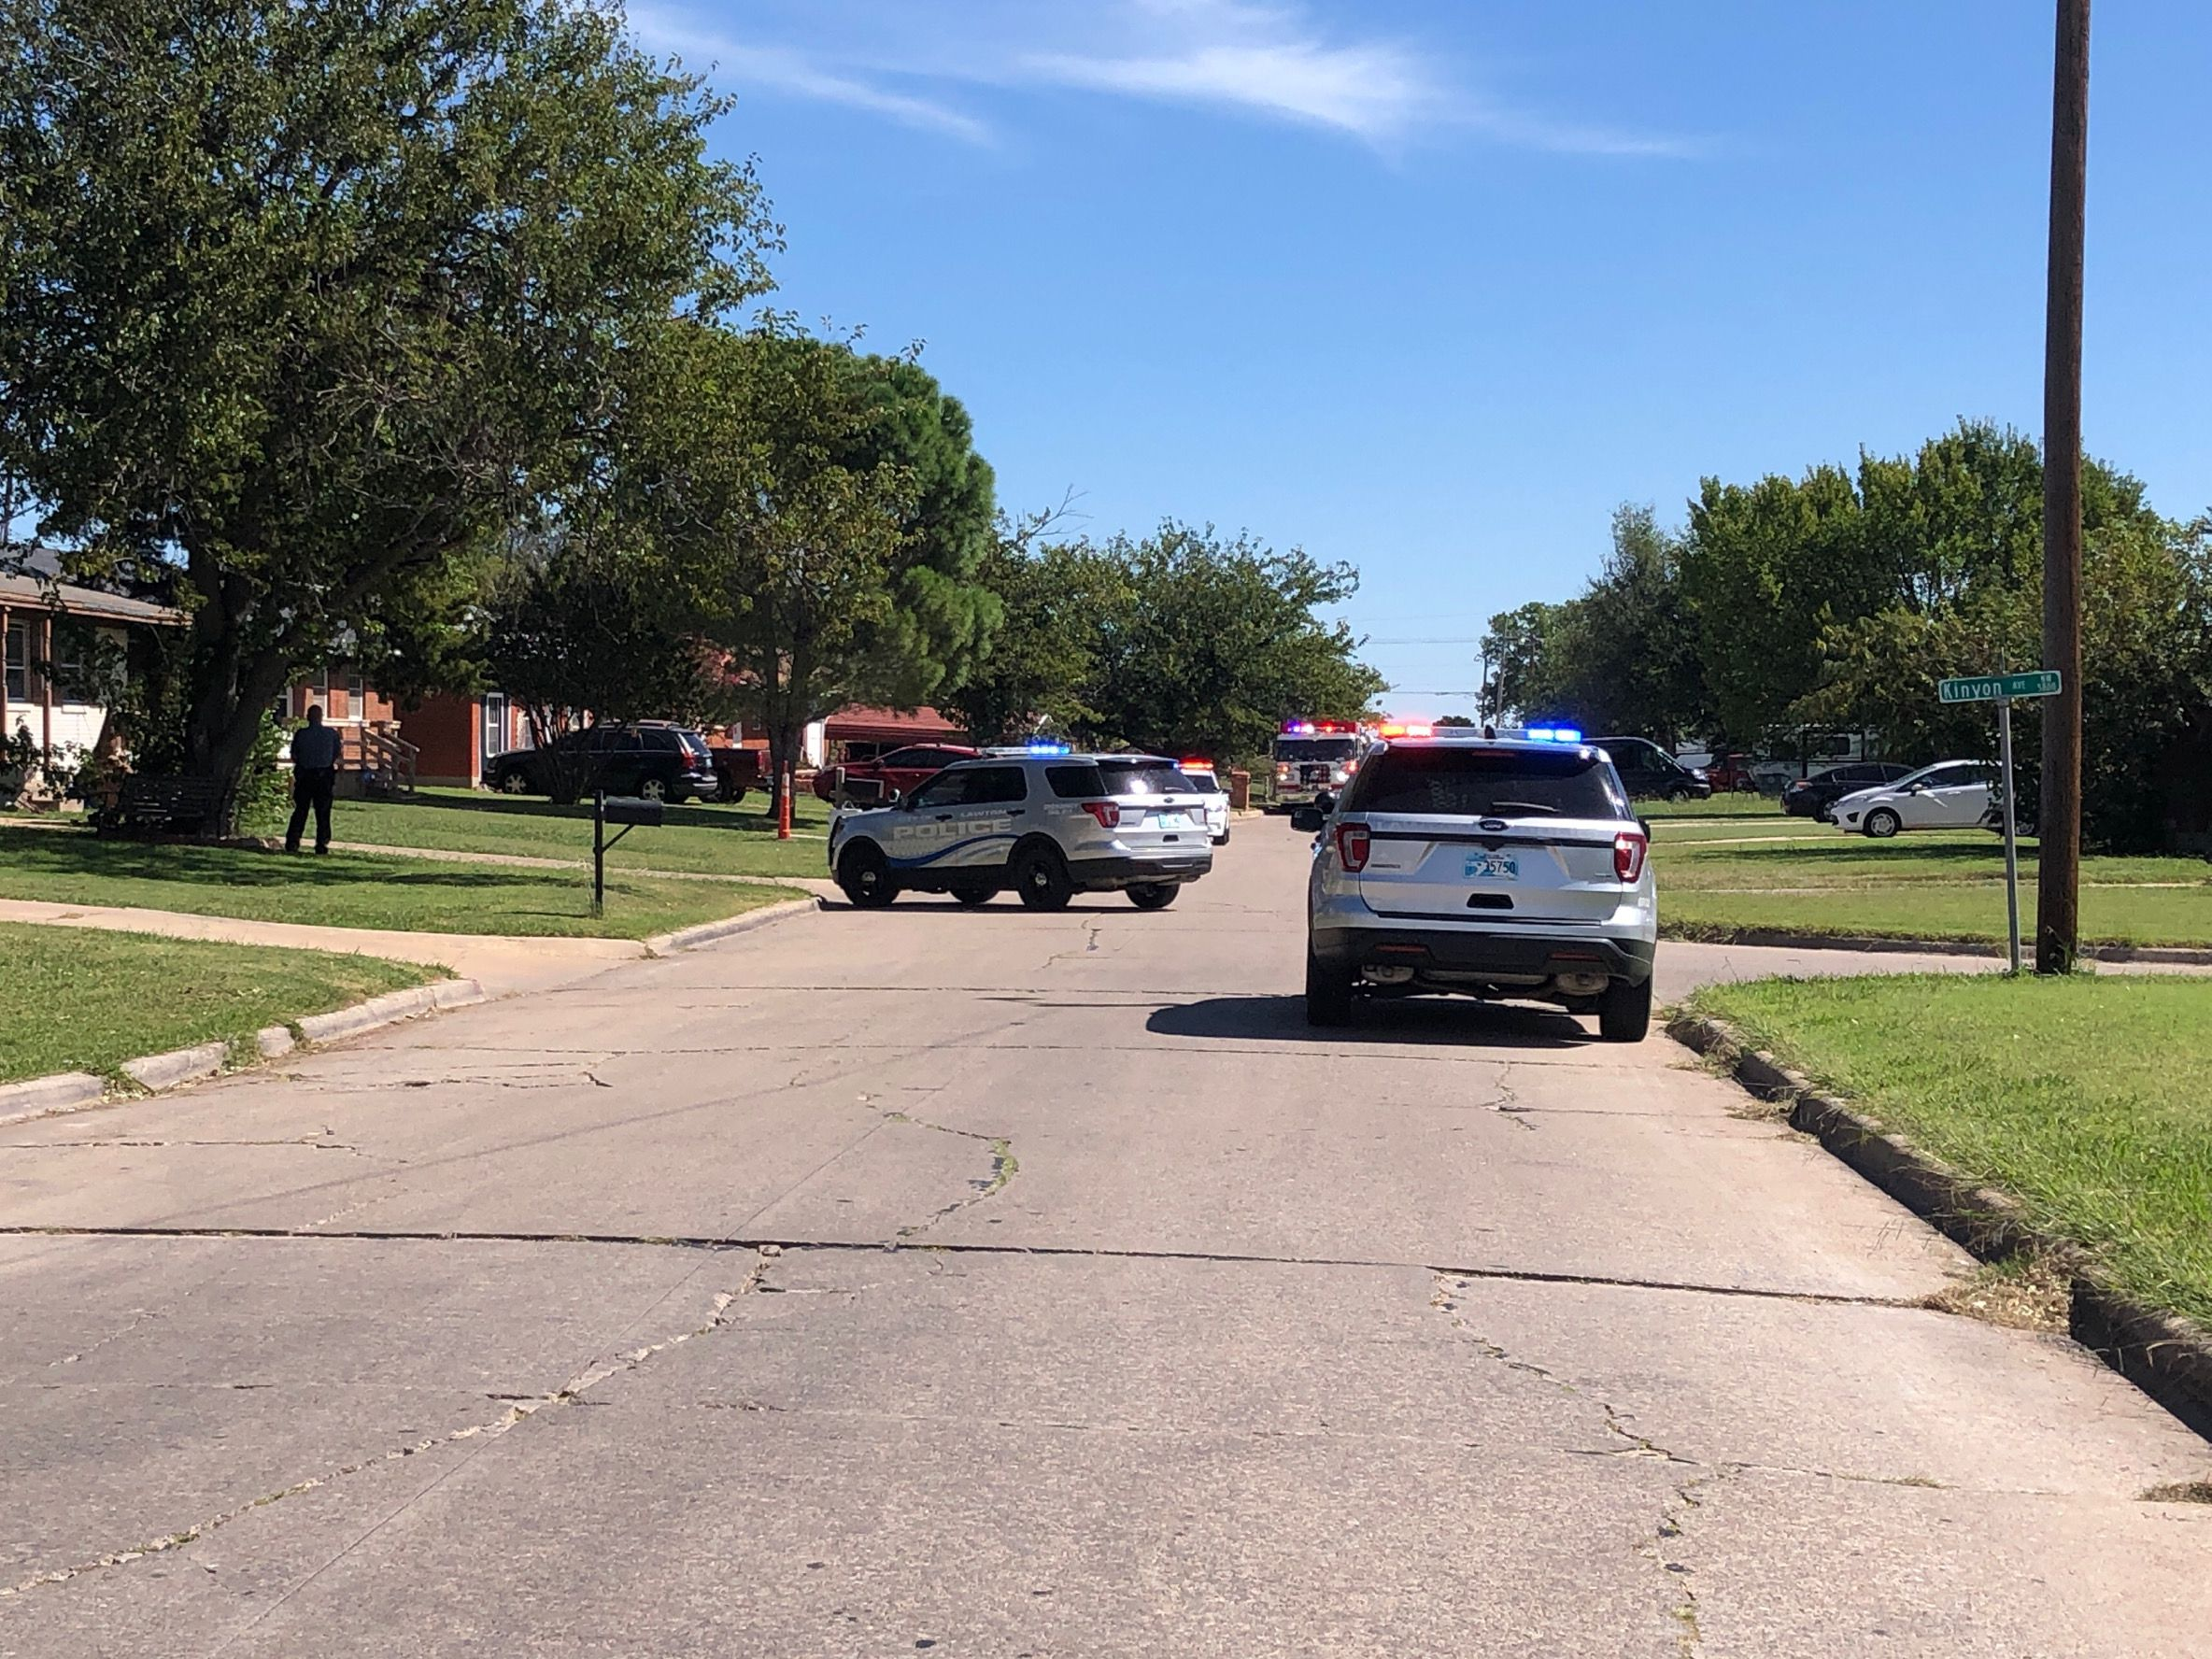 UPDATE: Standoff ends, no injuries reported